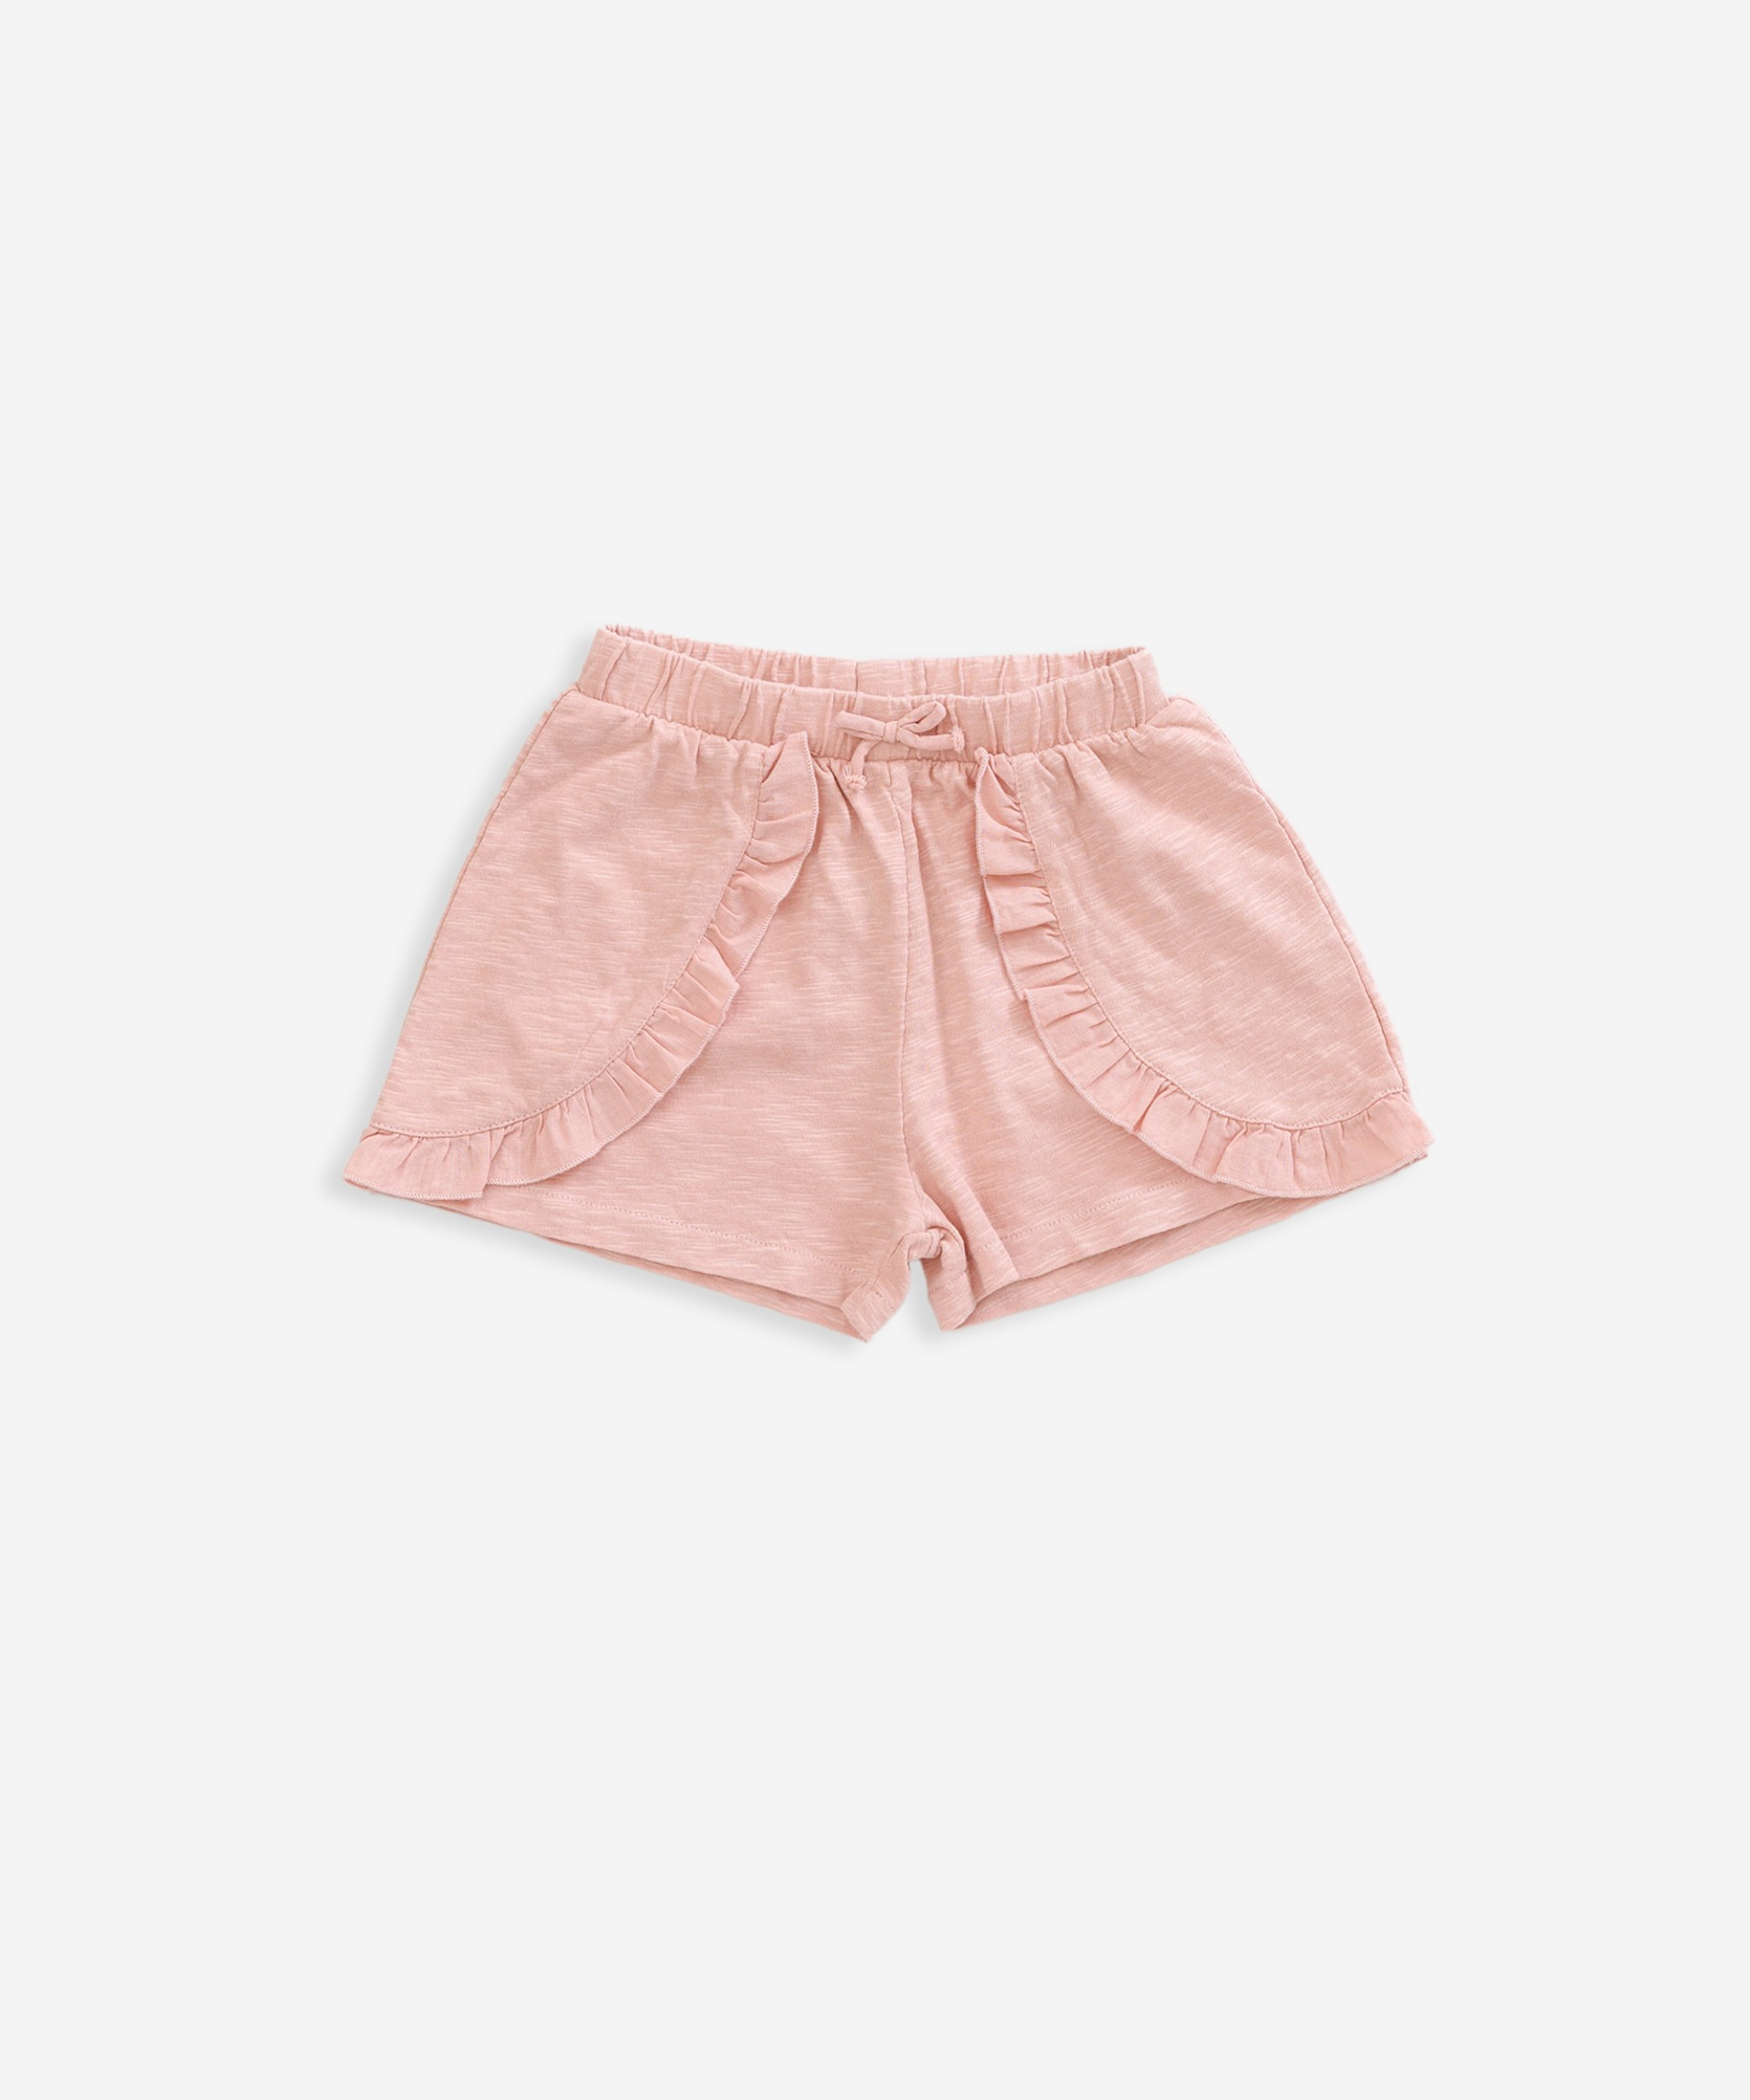 Shorts in organic cotton | Weaving